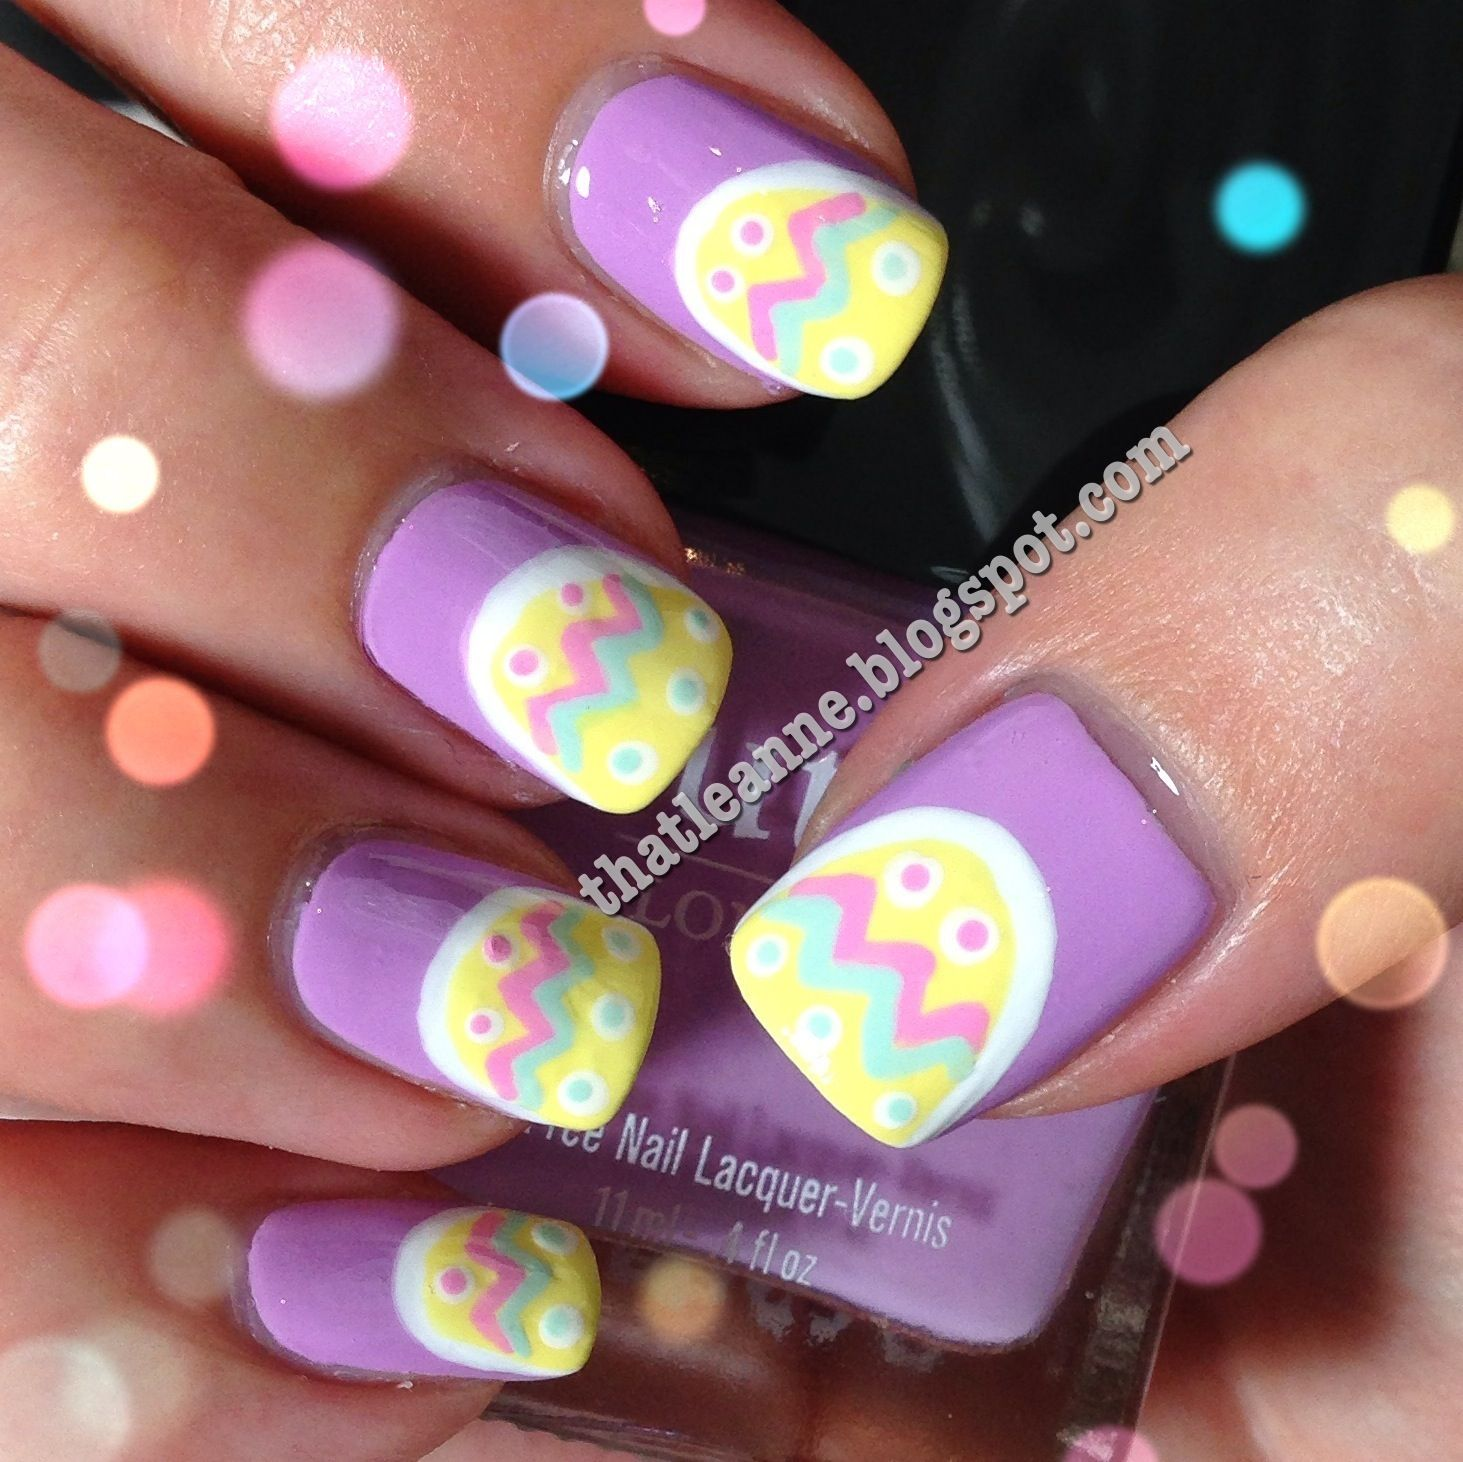 Easy Easter Nail Art see more designs on online nail dryer store ...